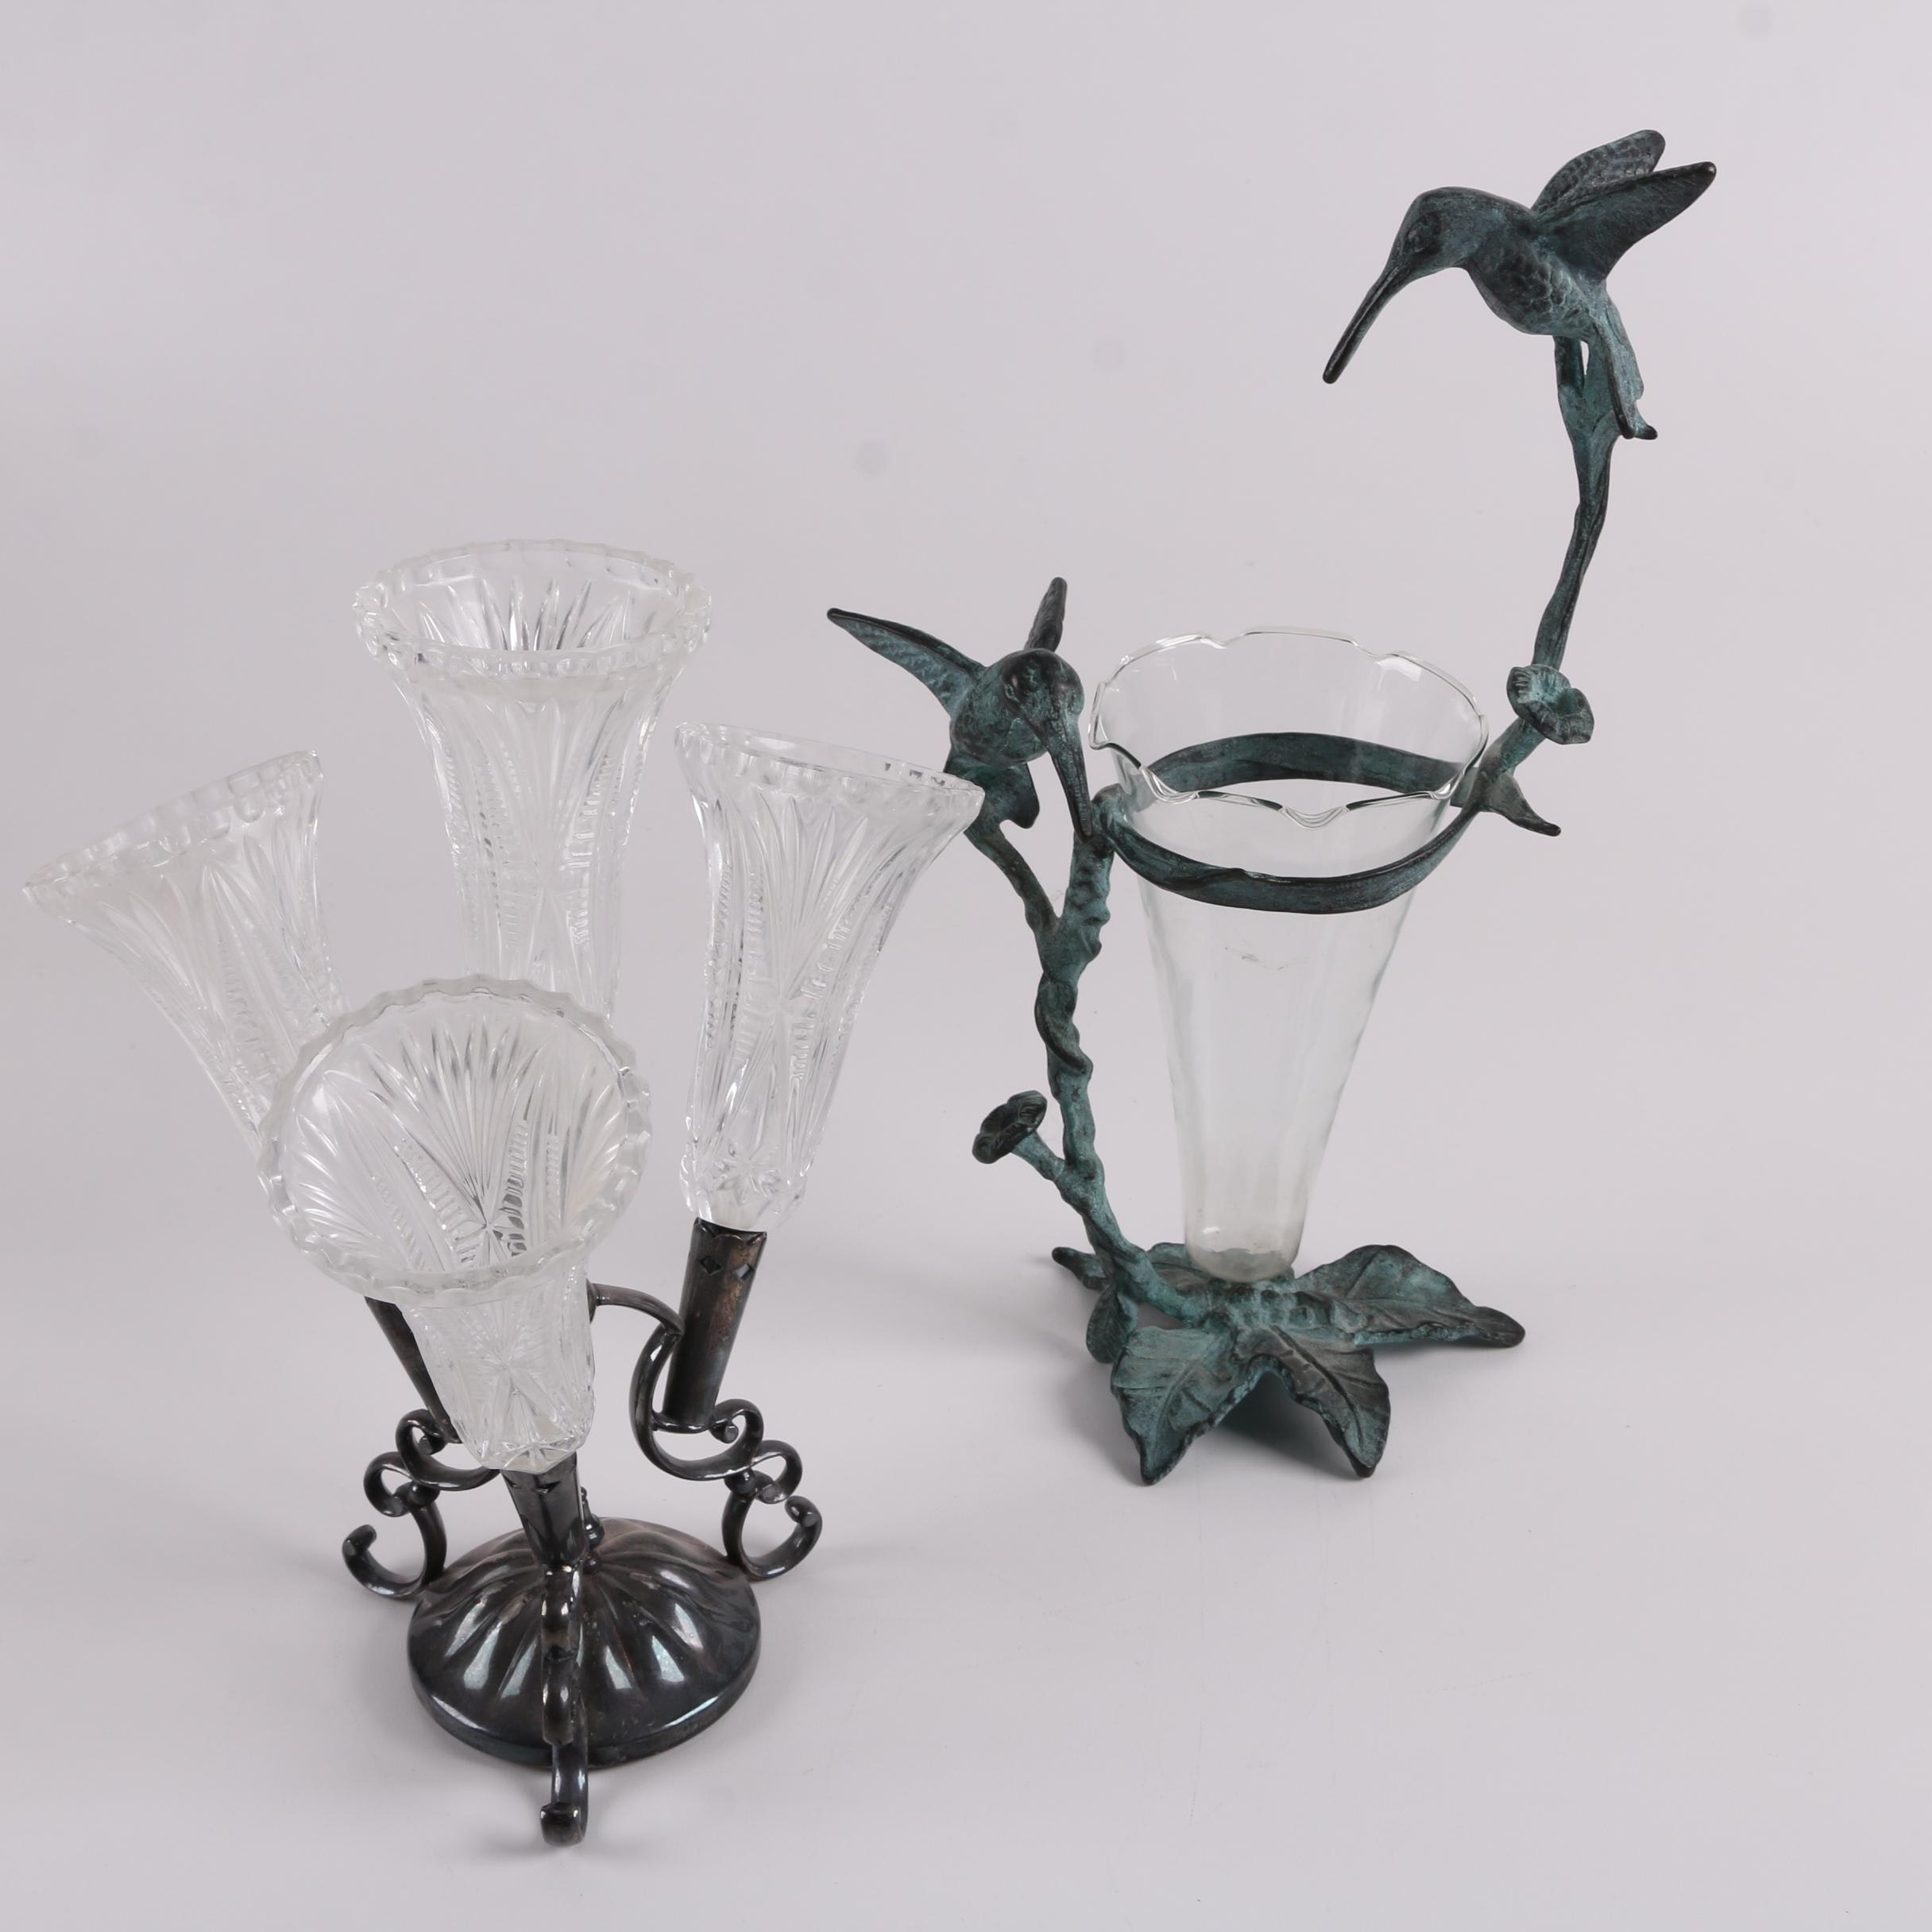 Victorian Style Epergne with a Mounted Hummingbird Motif Vase